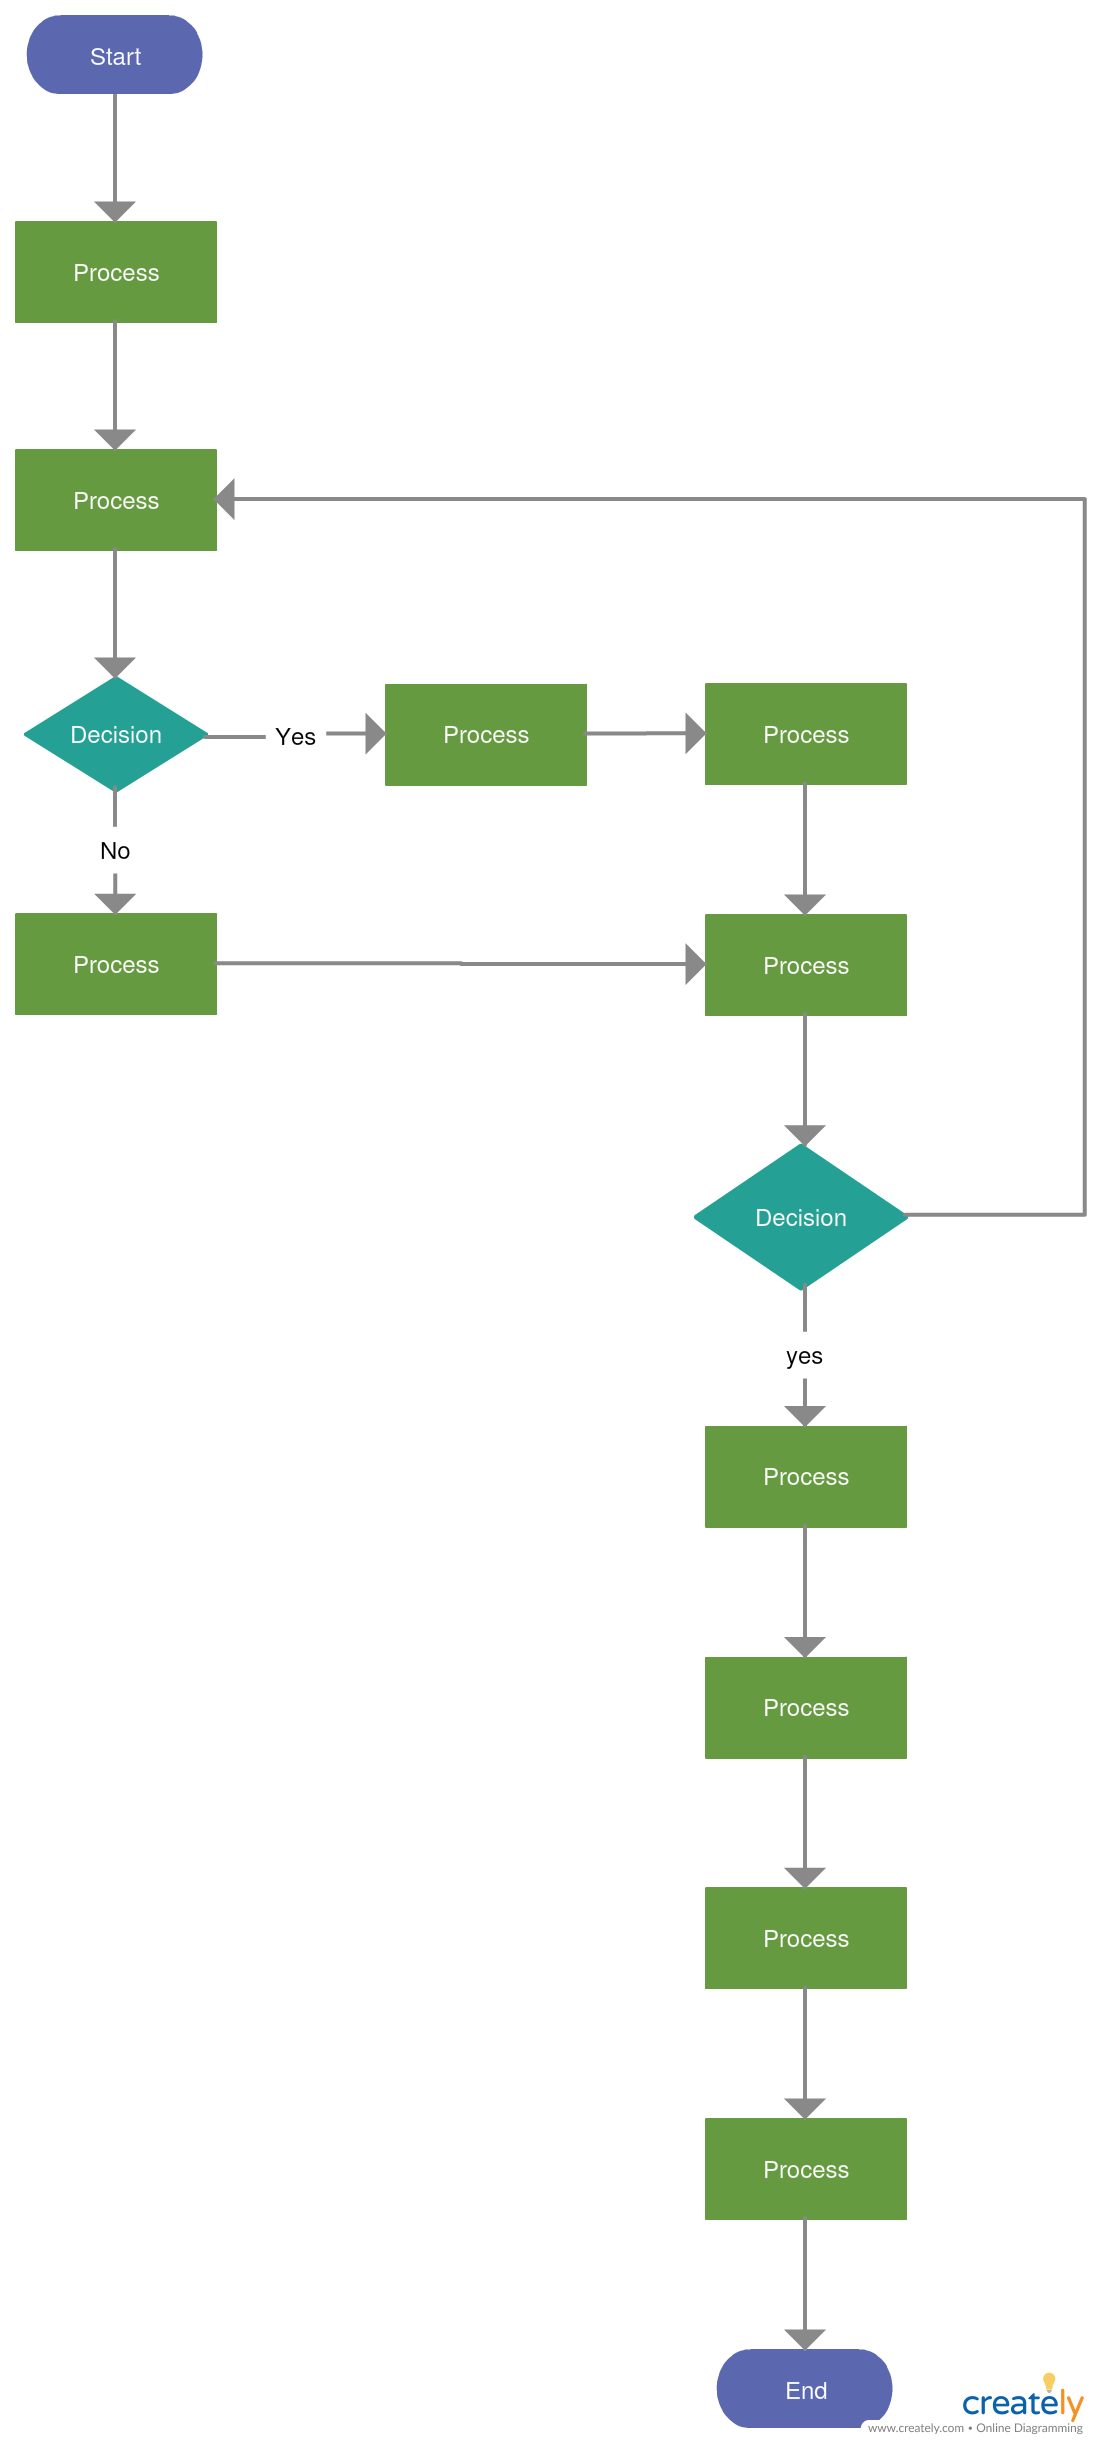 vertical flowchart template editable online shopping flowchart to visualize your online shopping process flow and make improvements to them  [ 1097 x 2444 Pixel ]